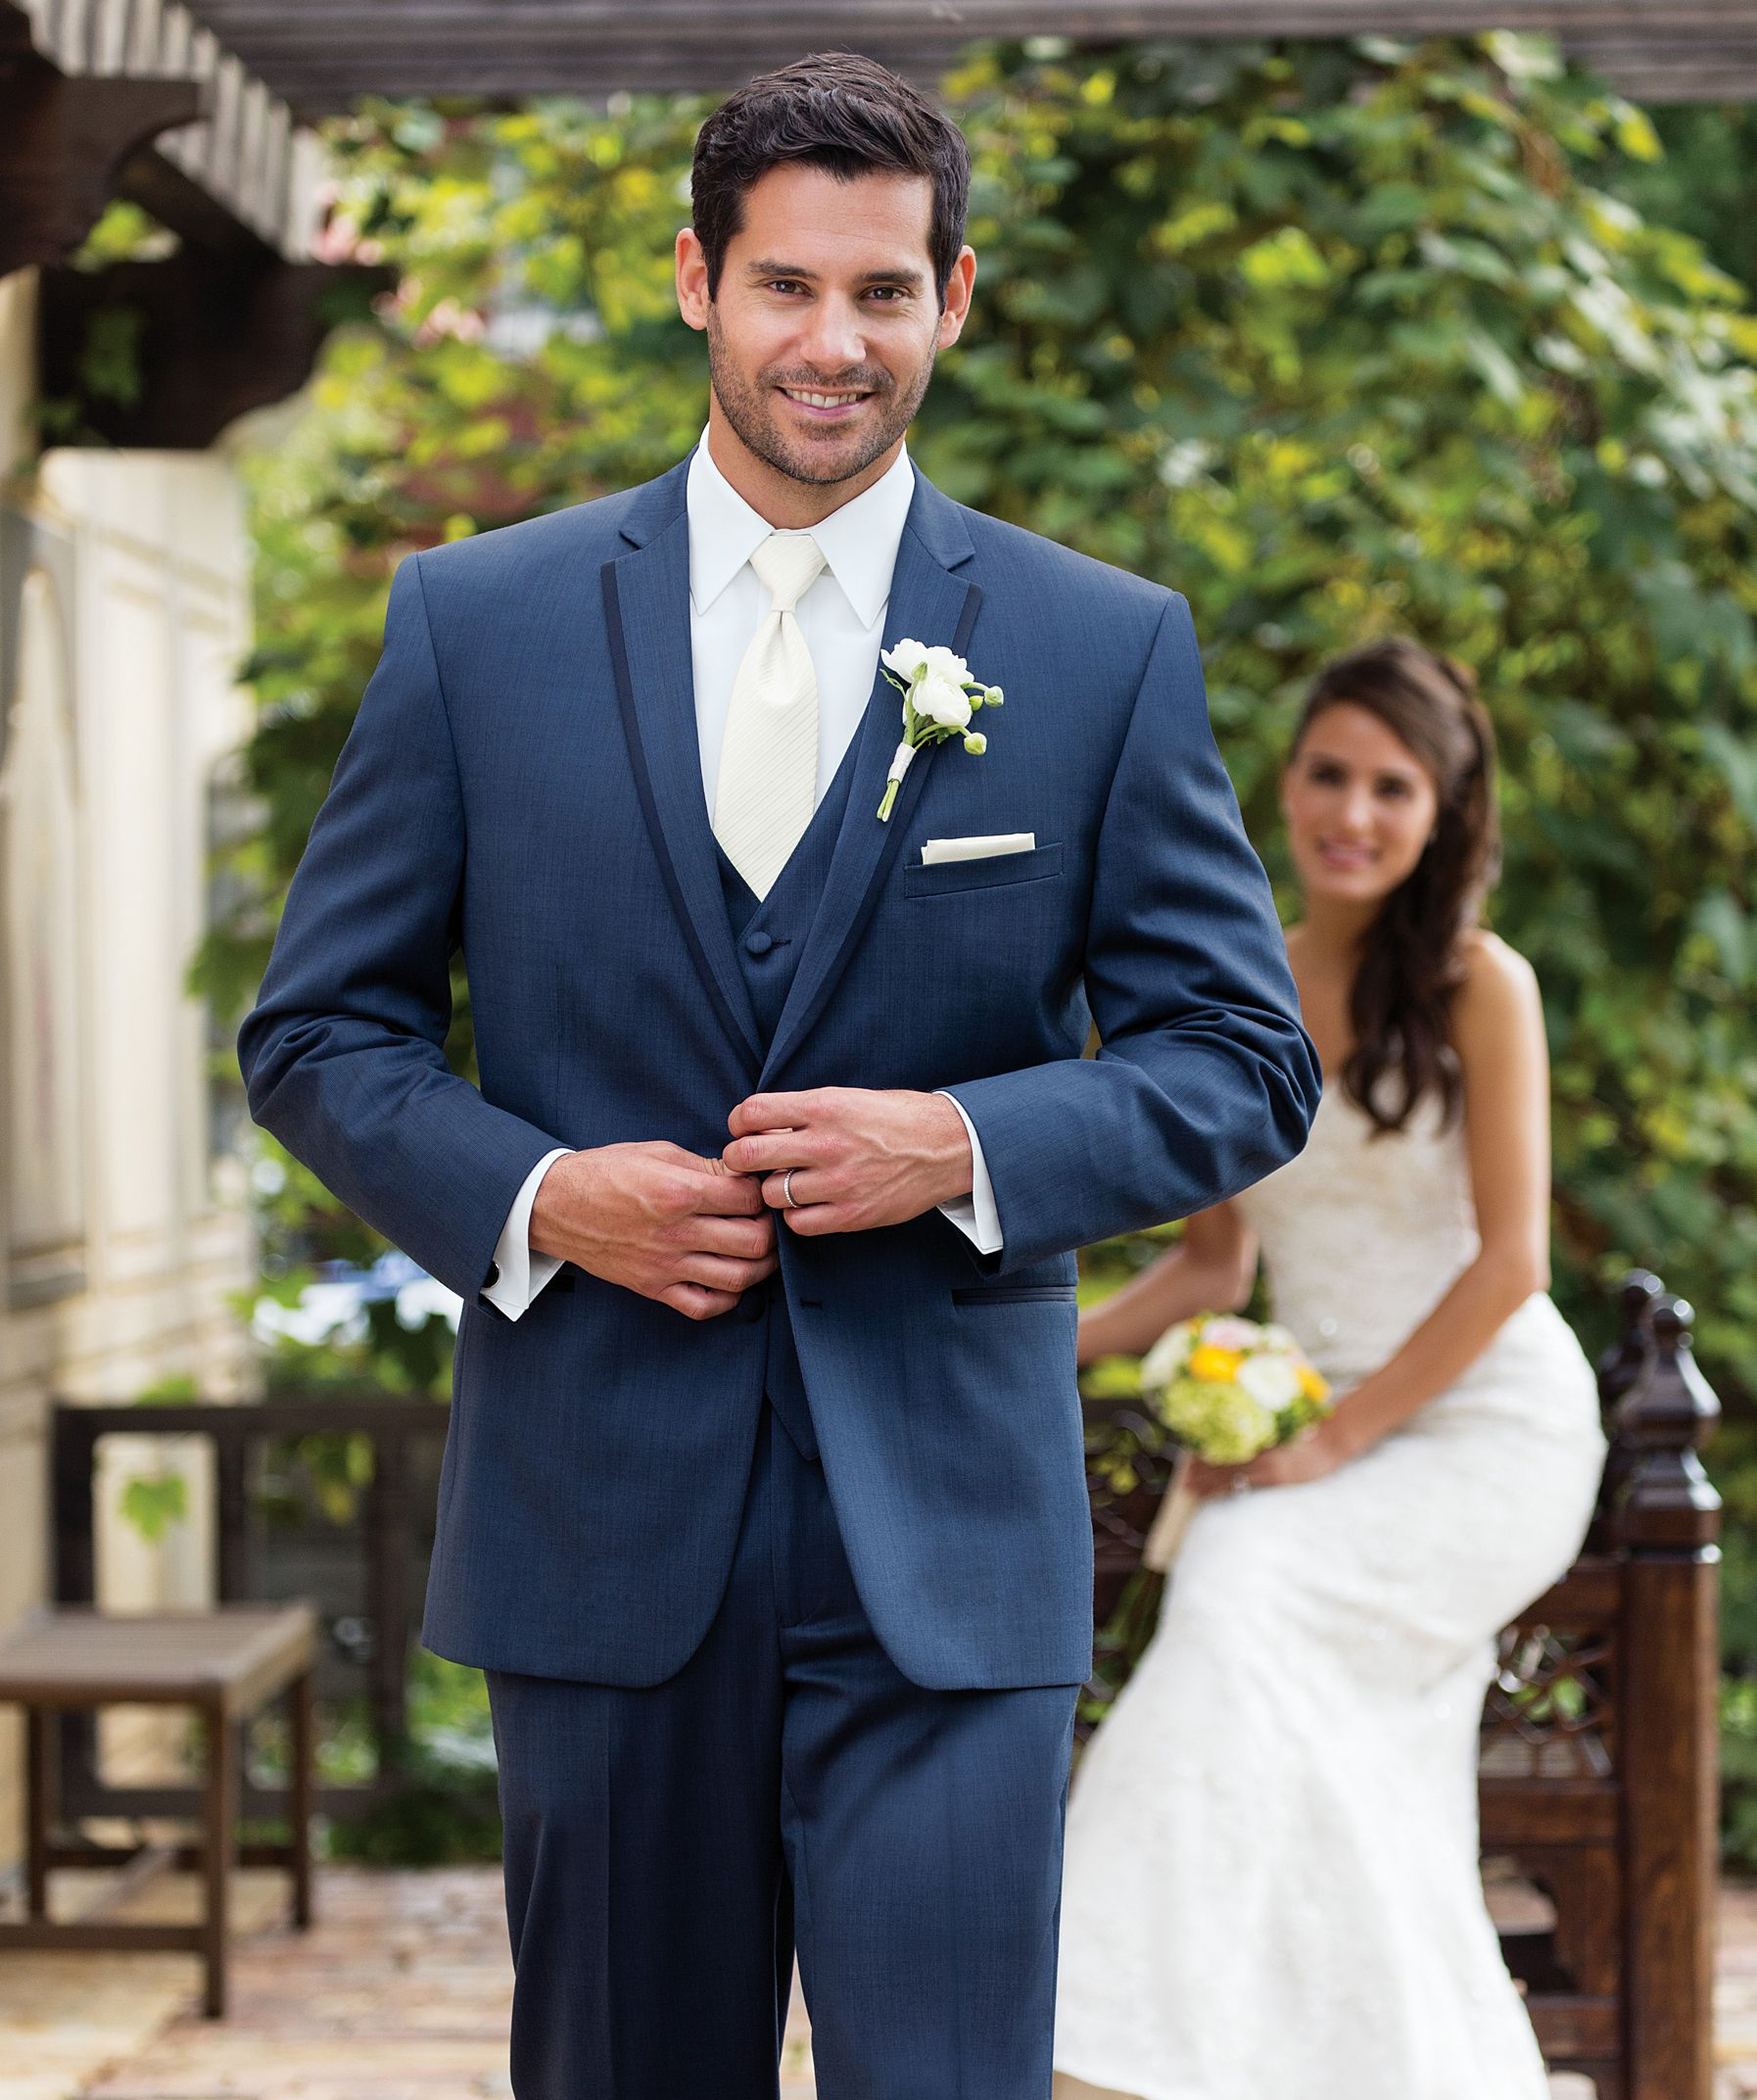 Vintage Wedding Dresses Dallas: Slate Blue Allure Suit- He Could Be Your 'something Blue